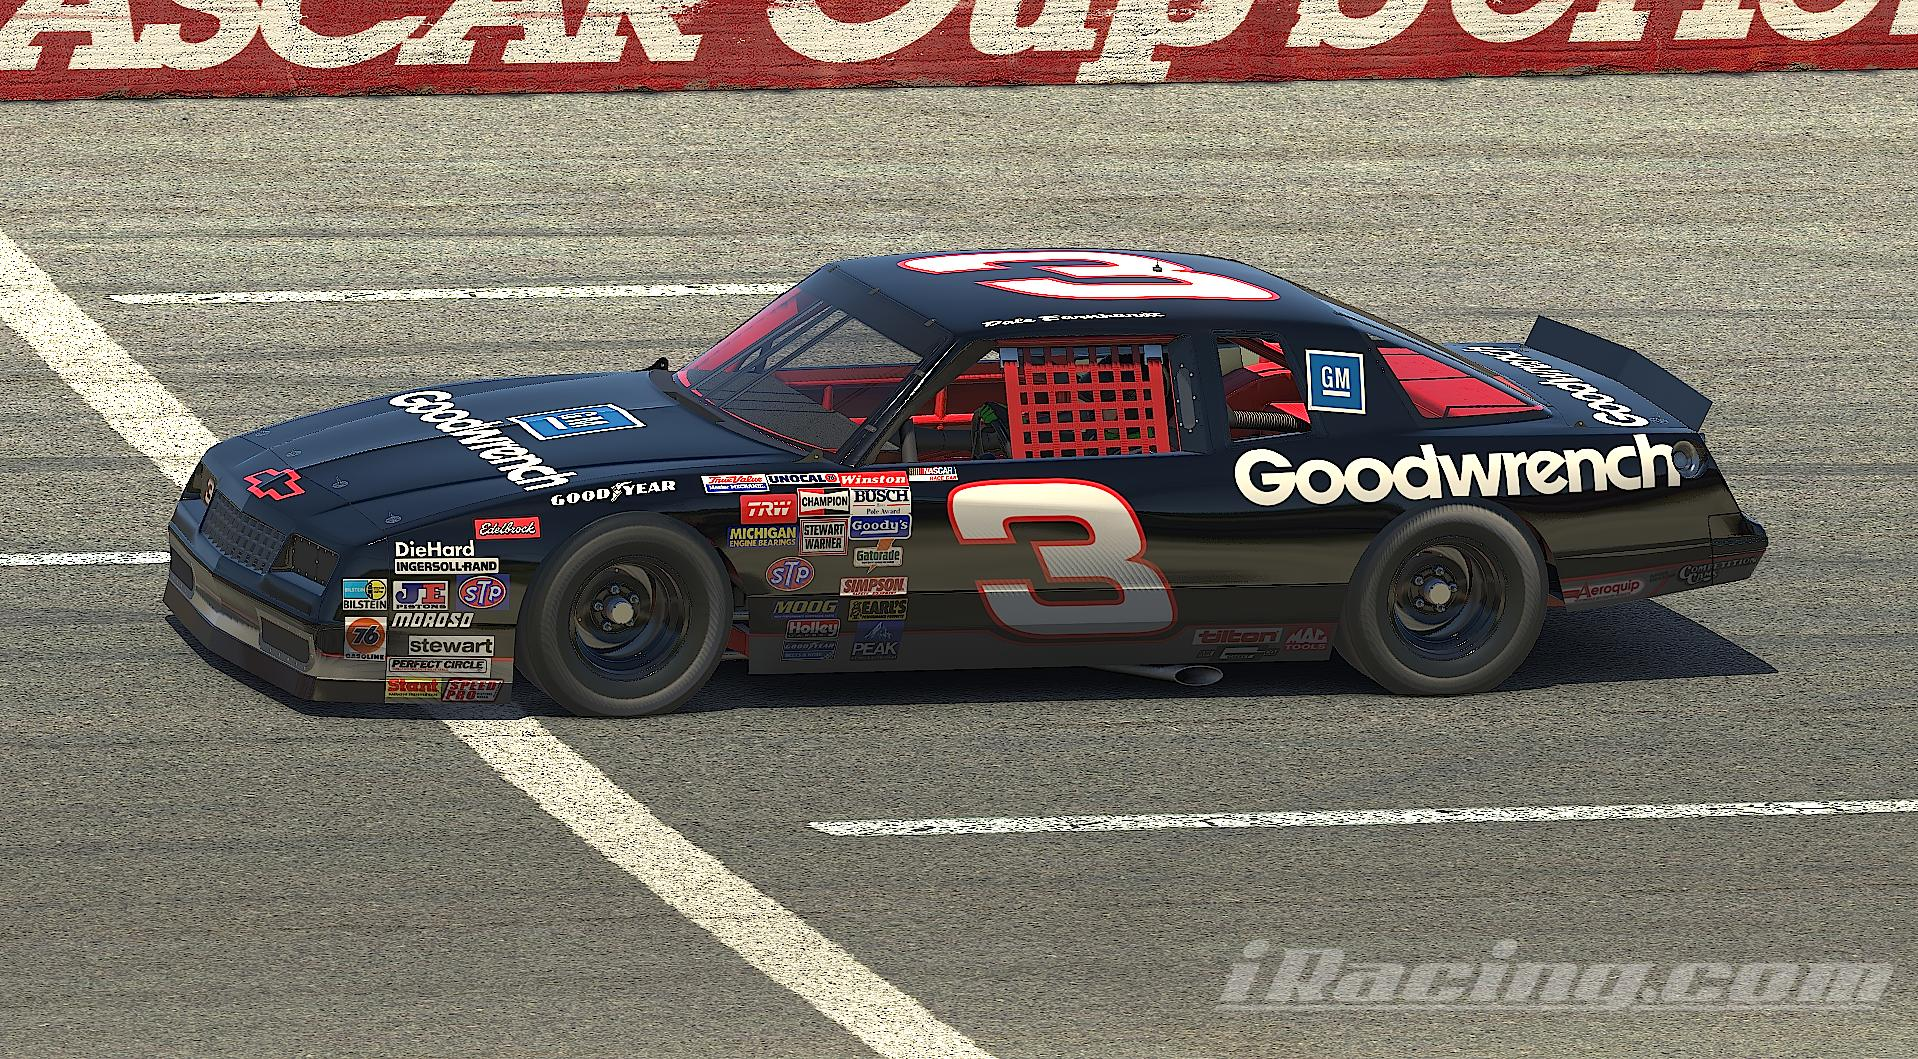 Preview of Dale Earnhardt Sr Goodwrench (no #) 1987 Chevrolet Monte Carlo by Nicholas Doucette